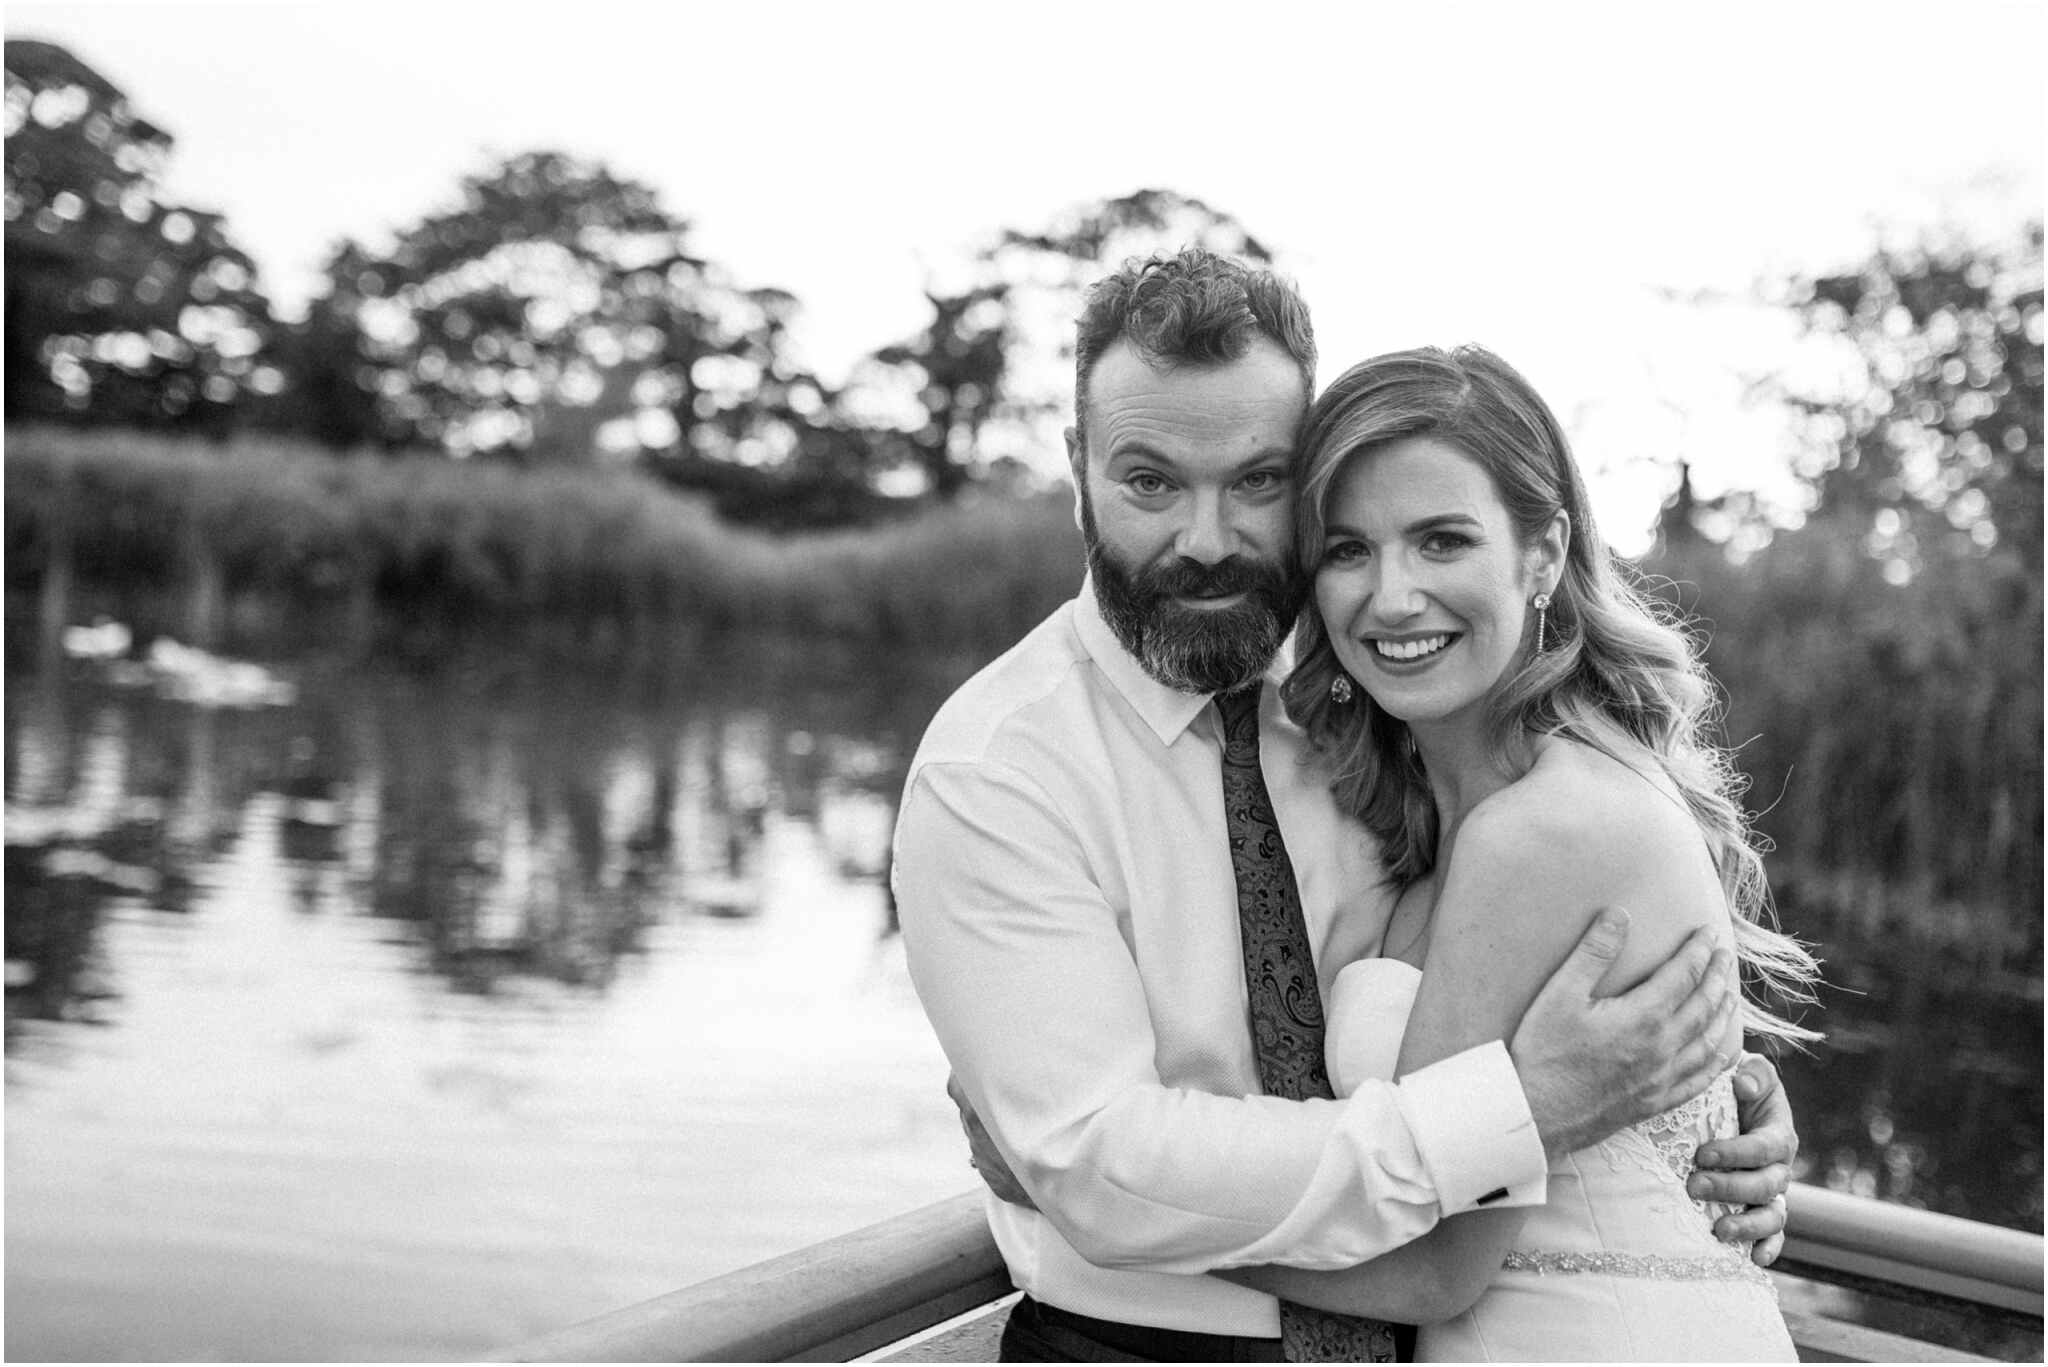 ballymagarvey village wedding 00137 - Fun and Relaxed wedding and elopement photography in Ireland, perfect for adventurous and outdoorsy couples